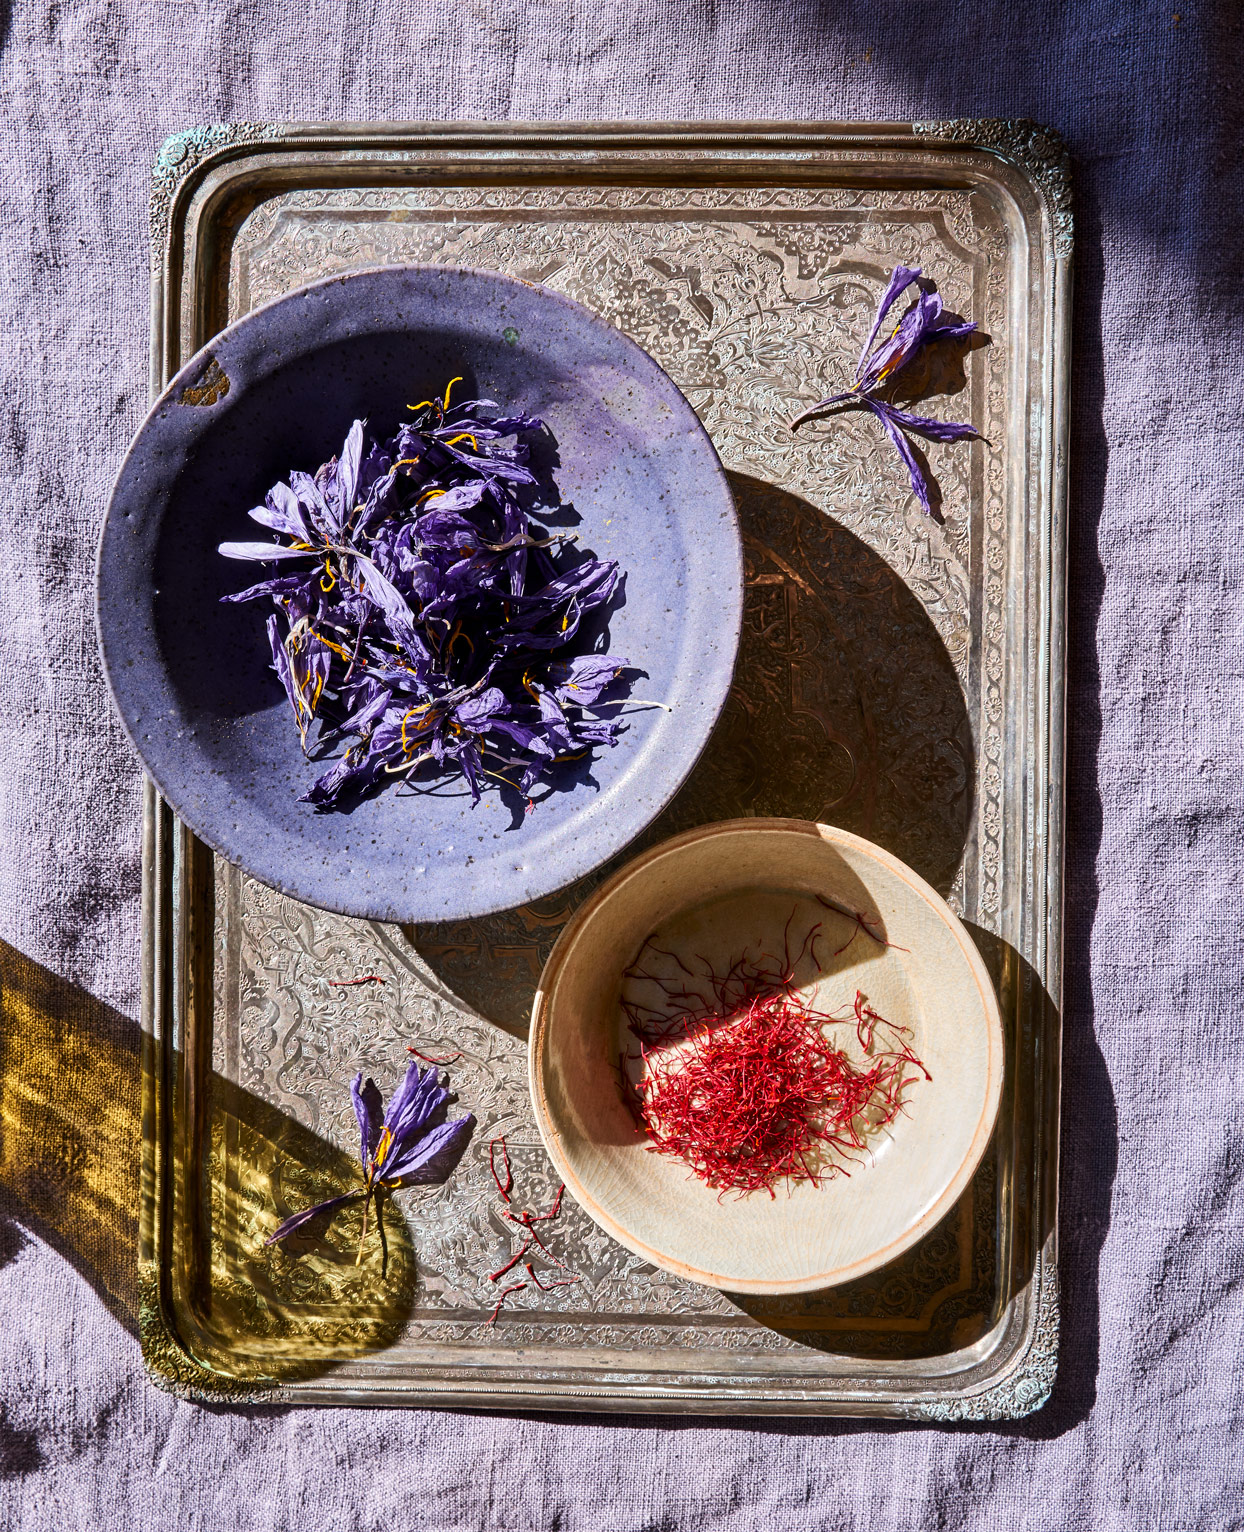 dried saffron flowers and saffron strands